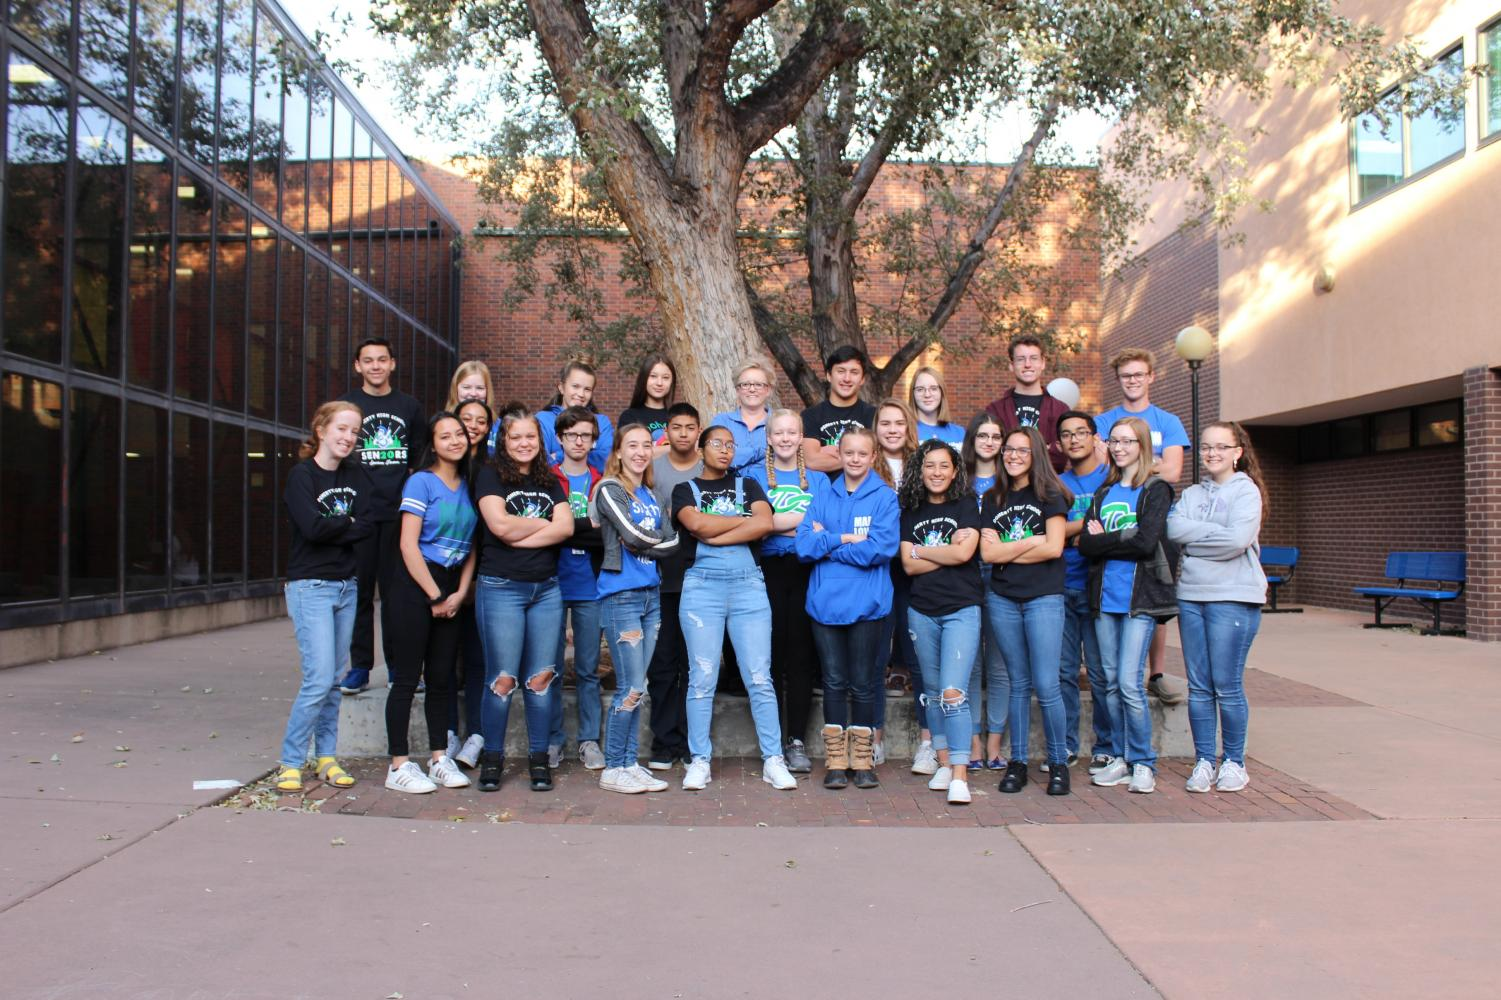 FBLA of the 2019-2020 school year poses for their yearbook photo.